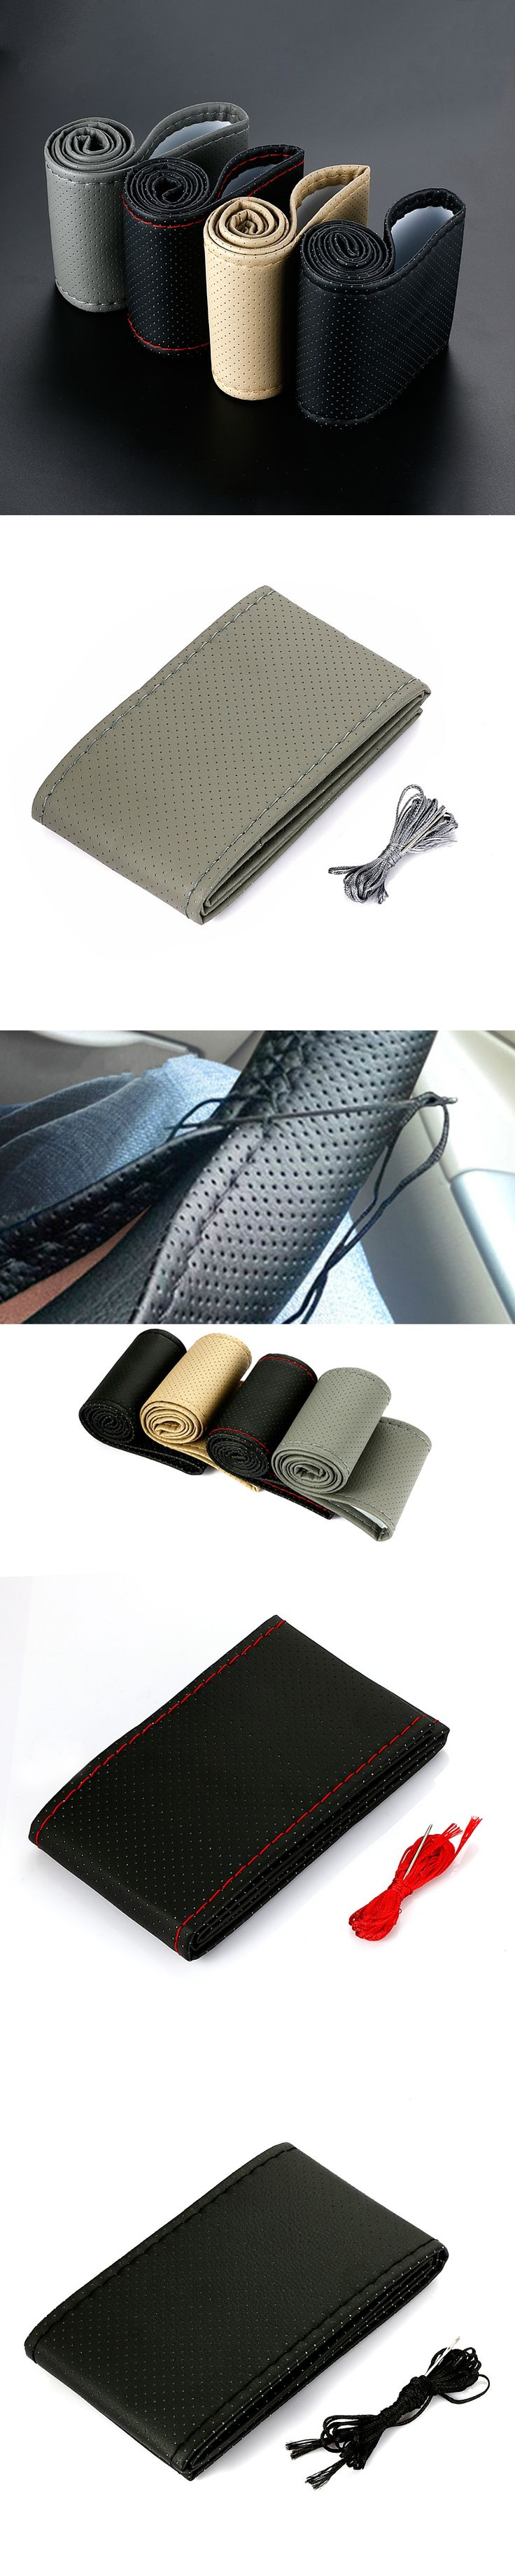 DEDC 1PC Car Styling DIY Car Steering Wheel Cover Artificial Leather for Diameter 38cm Auto Car Accessories